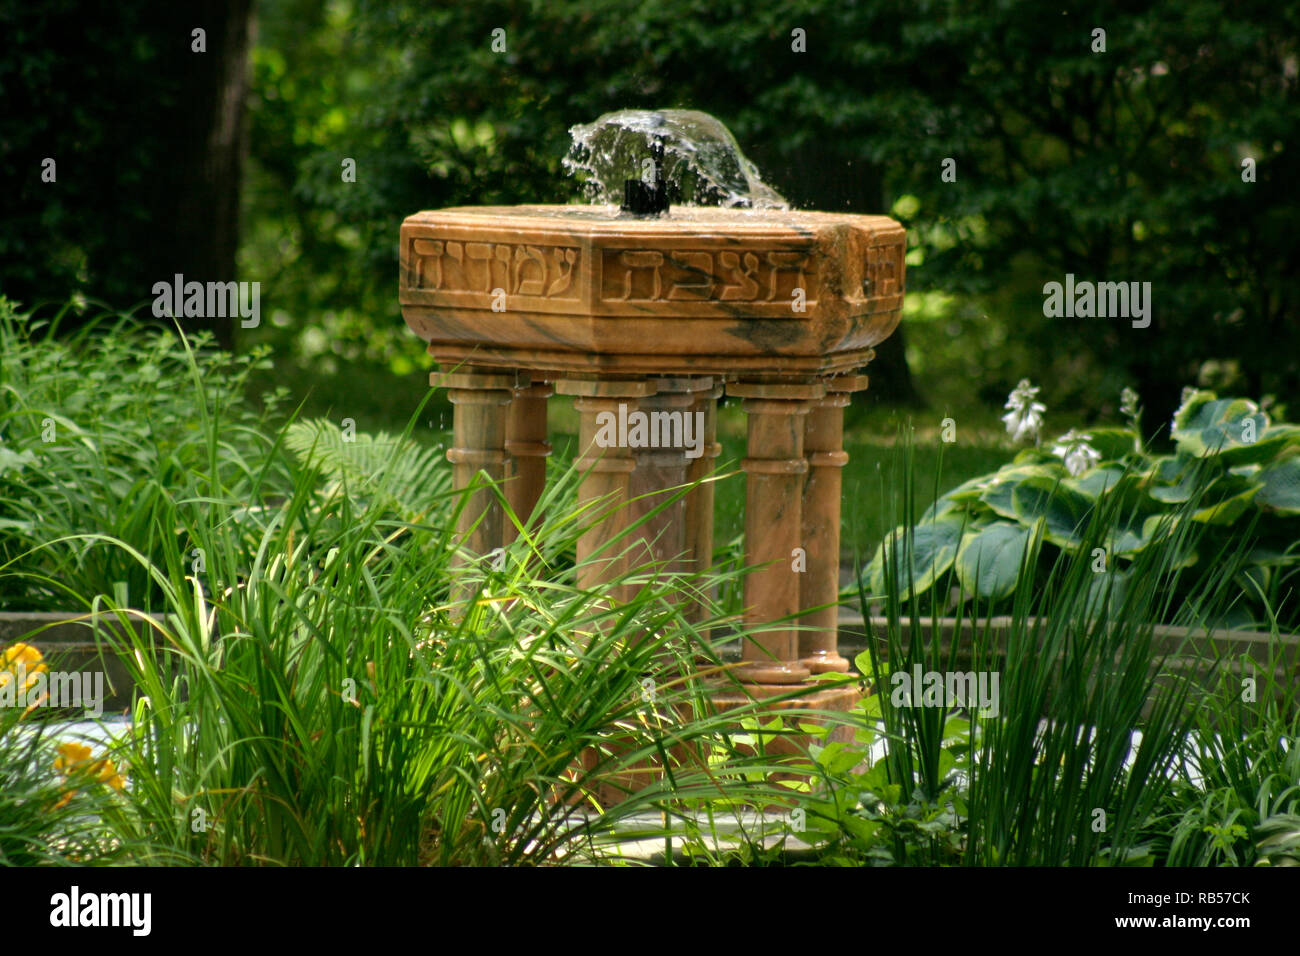 The Fountain of Wisdom in the Hebrew Cultural Garden in Cleveland, OH - Stock Image